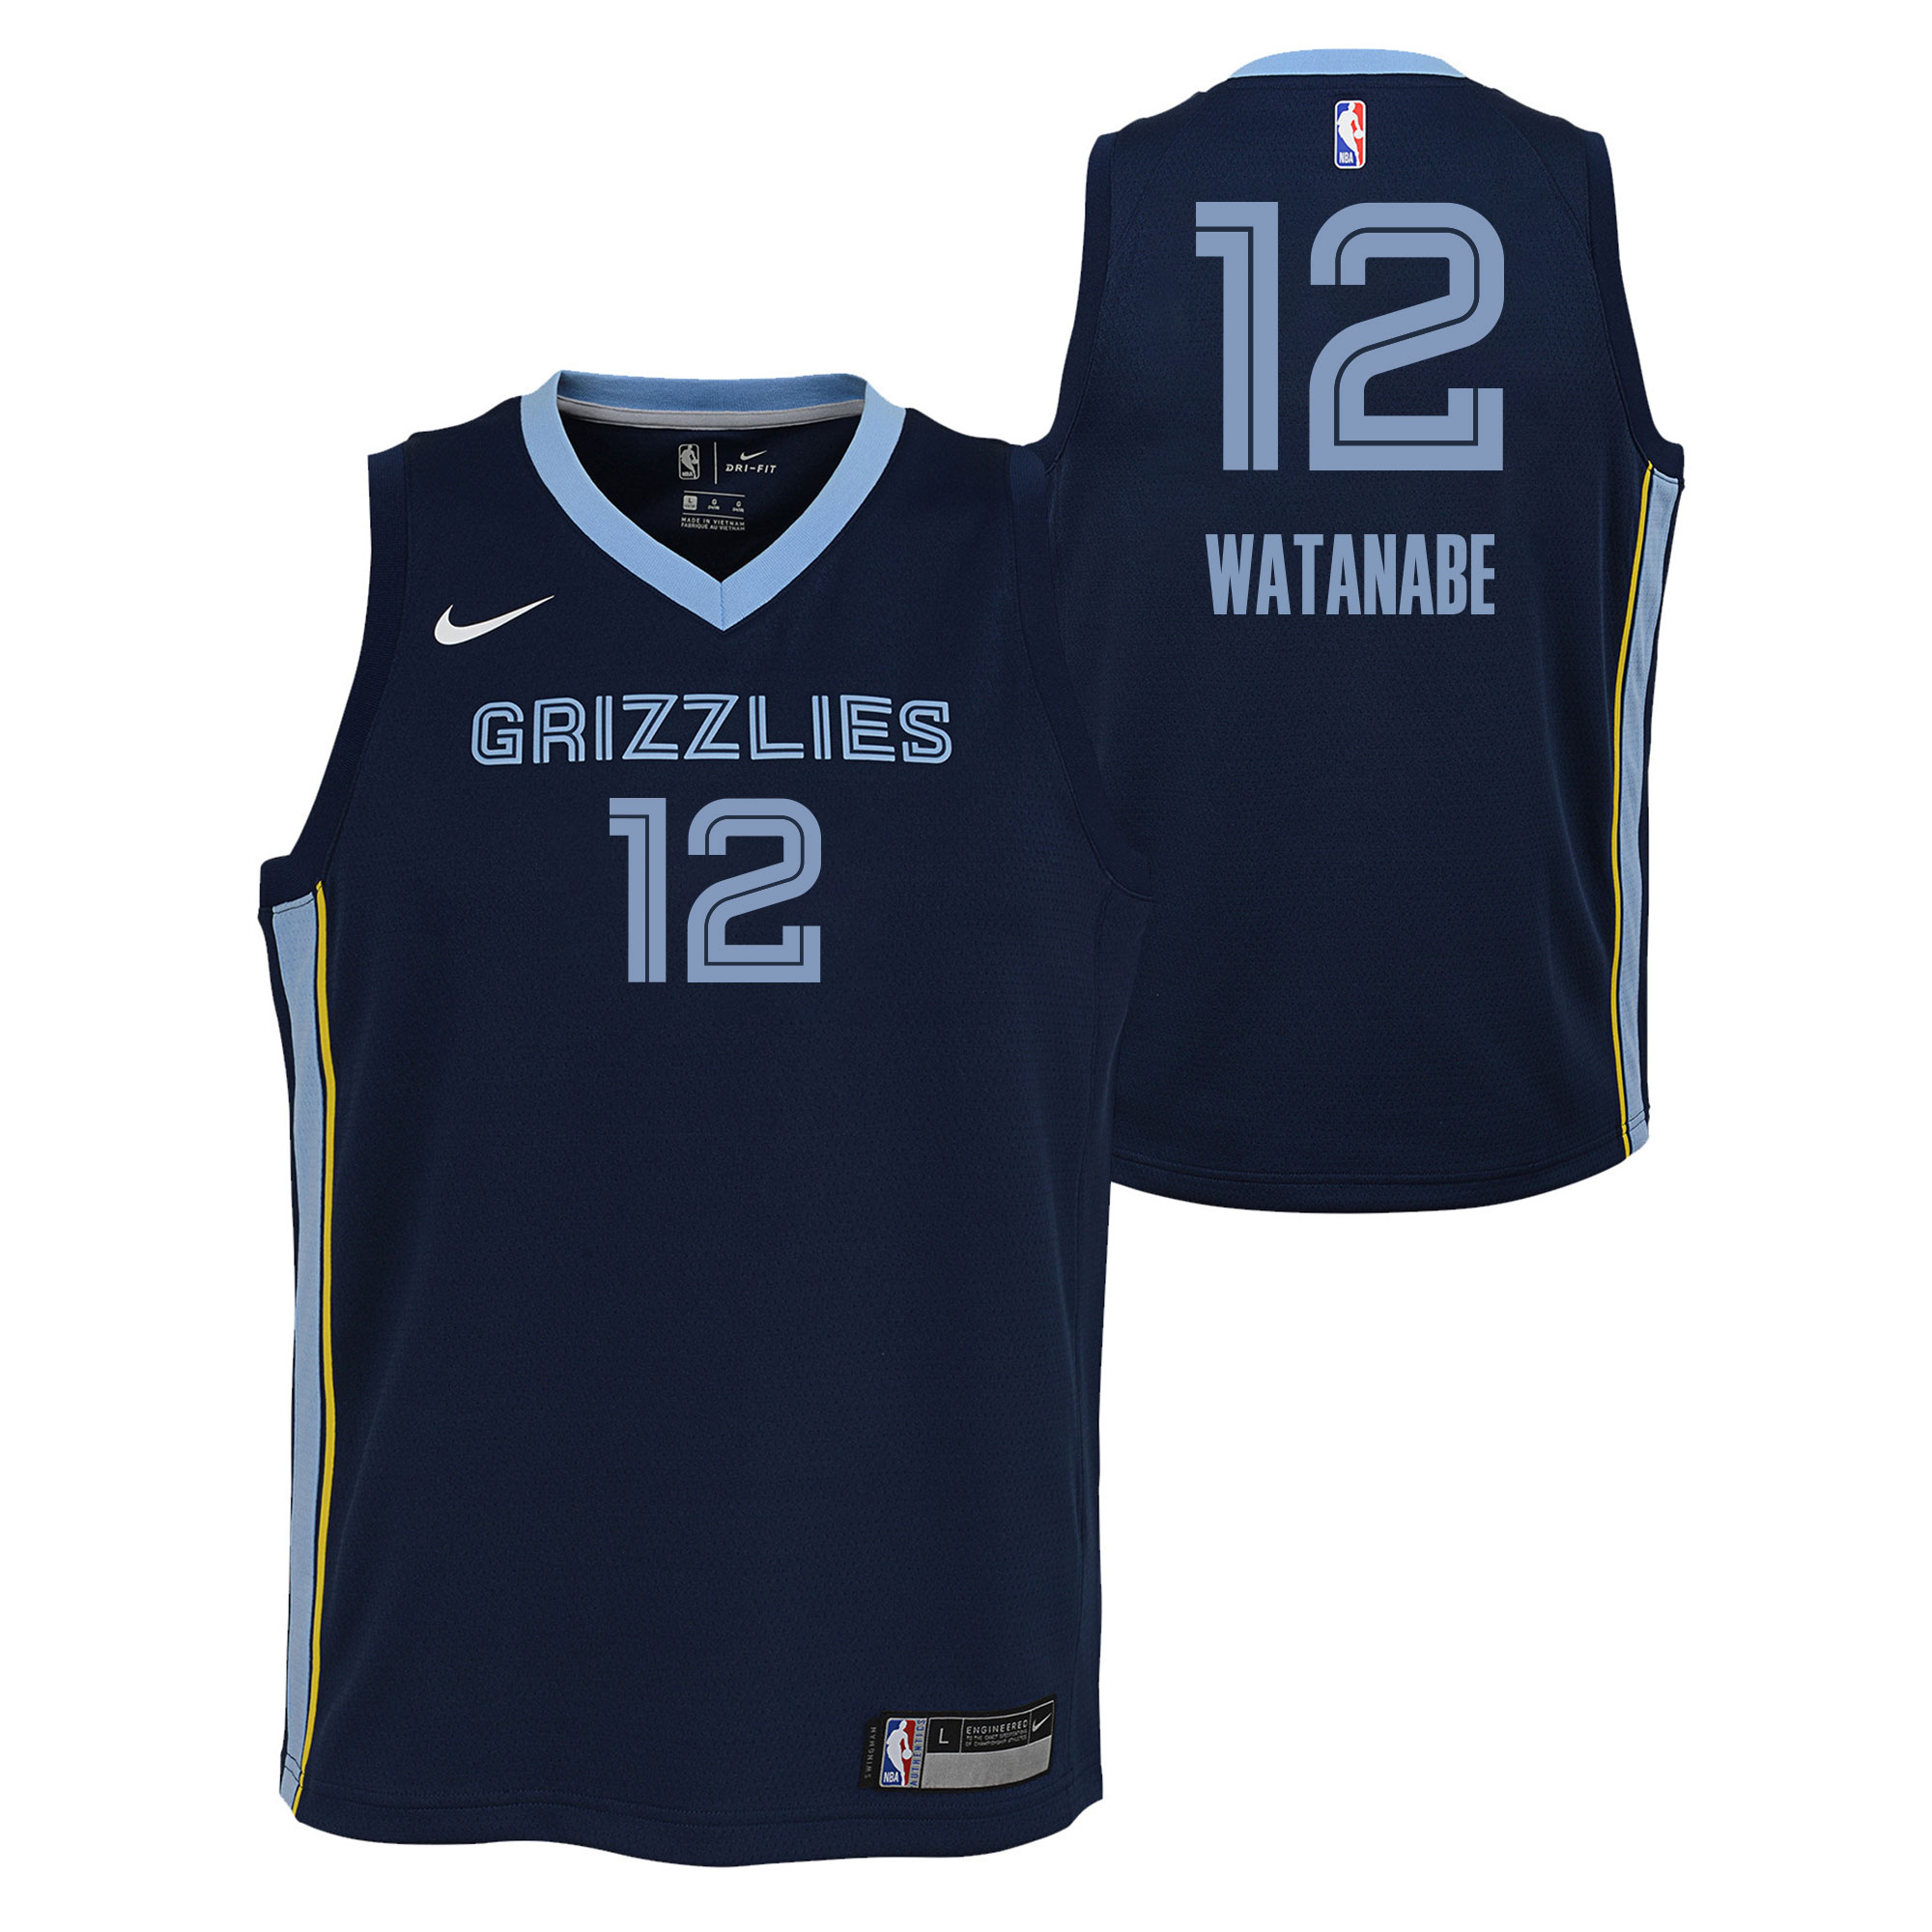 Yuta Watanabe Grizzlies Jersey NBA Store Icon Swingman Youth